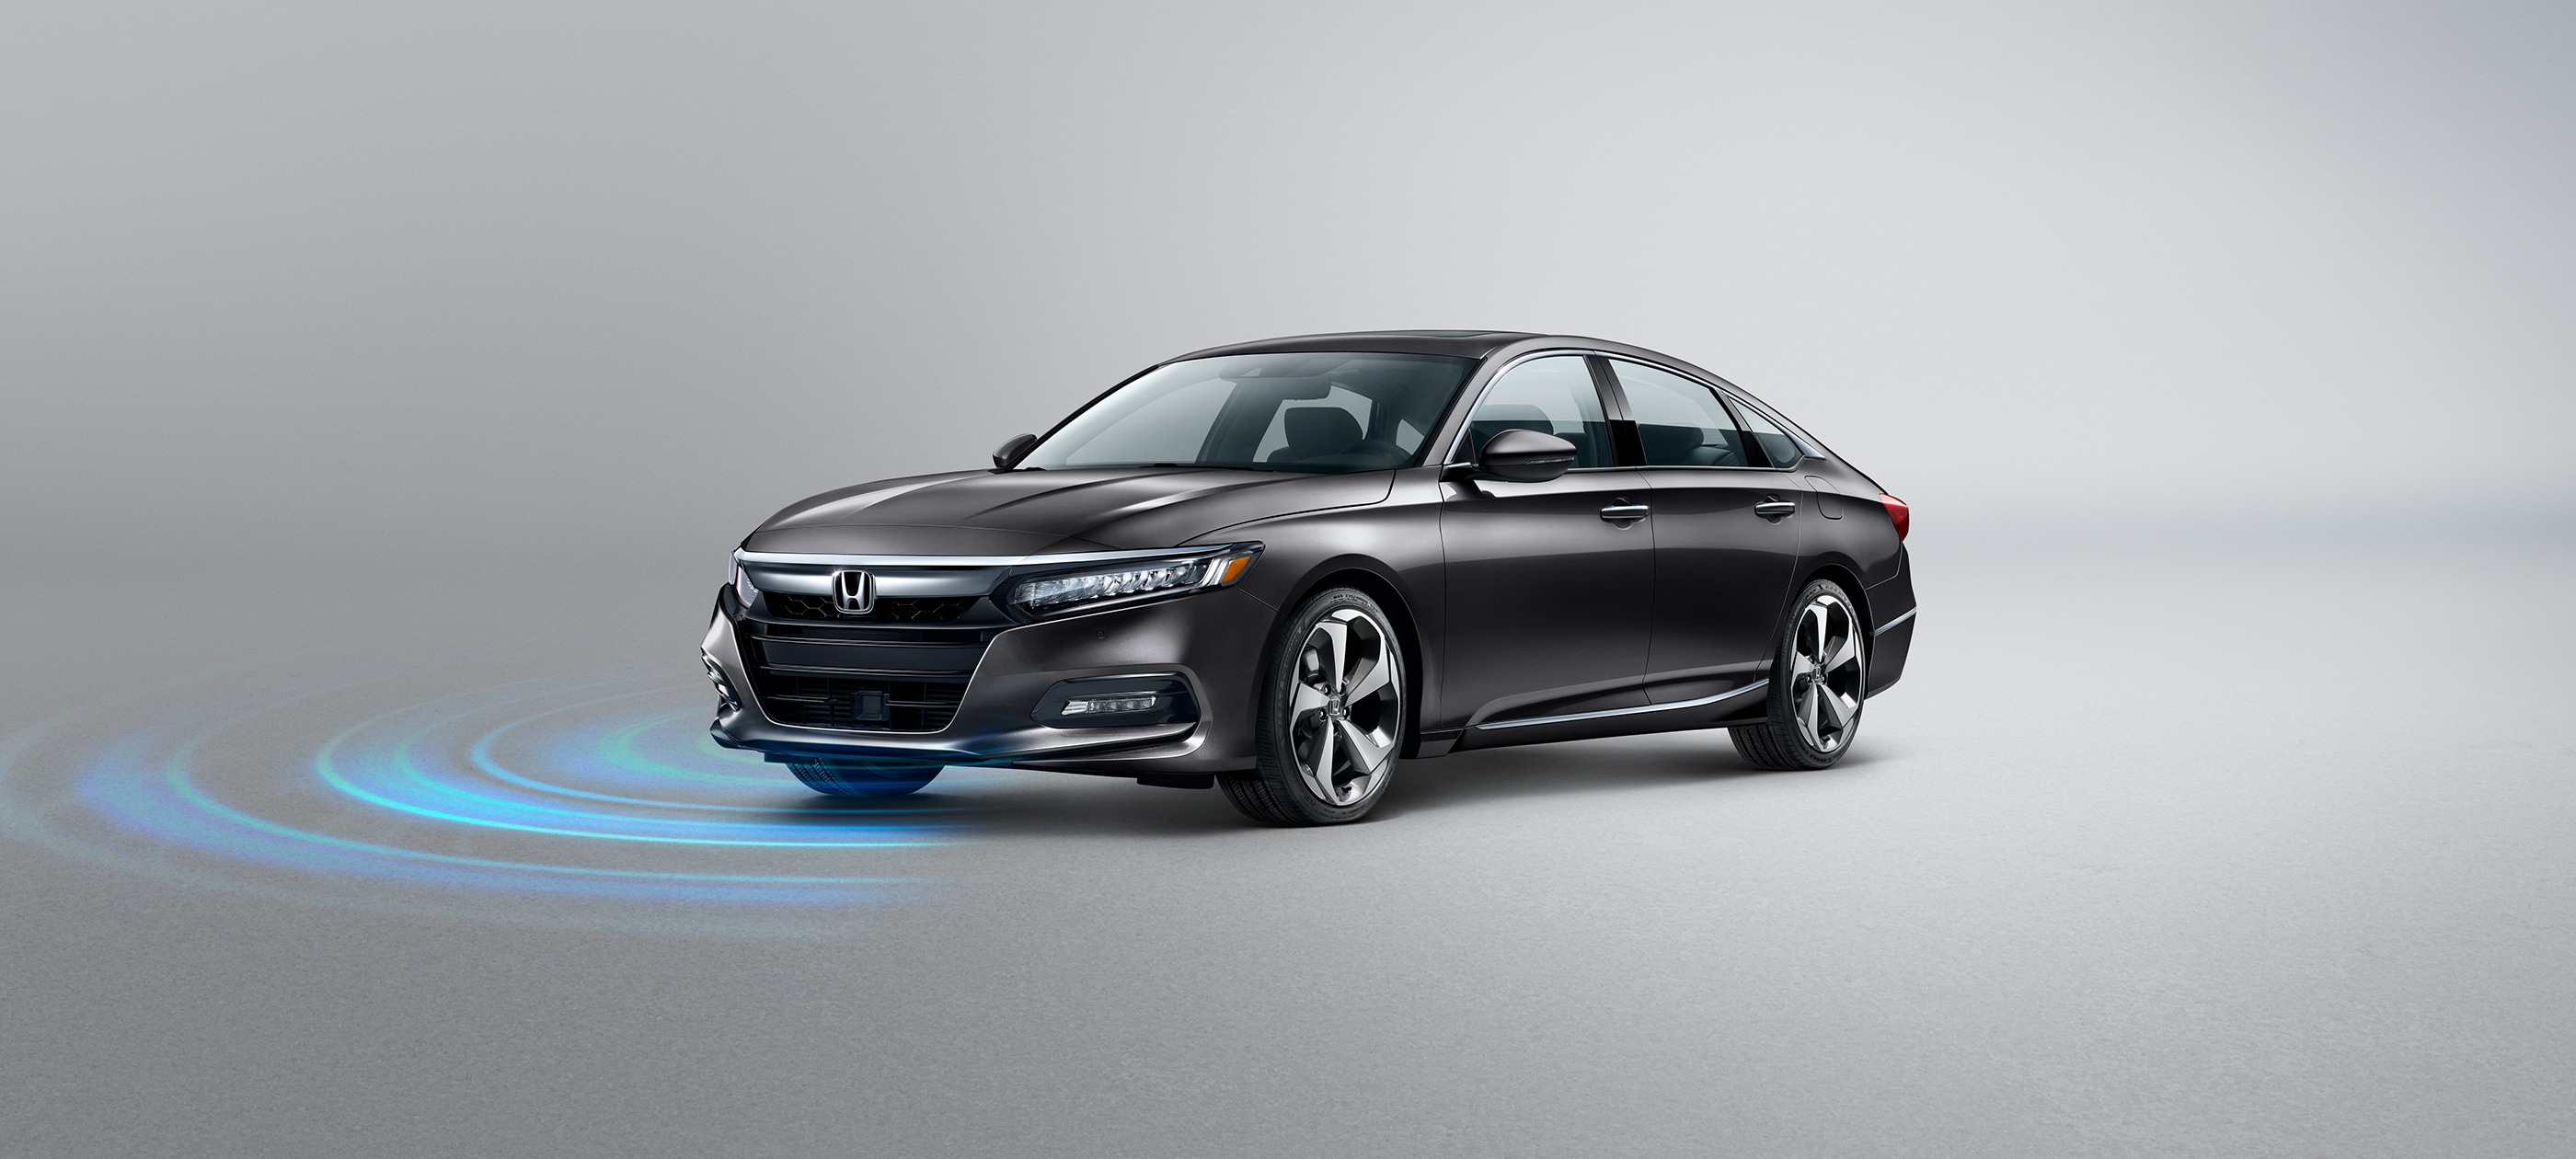 Front driver-side view of Honda Accord Touring 2.0T in Modern Steel Metallic with Honda Sensing® illustrated graphic.